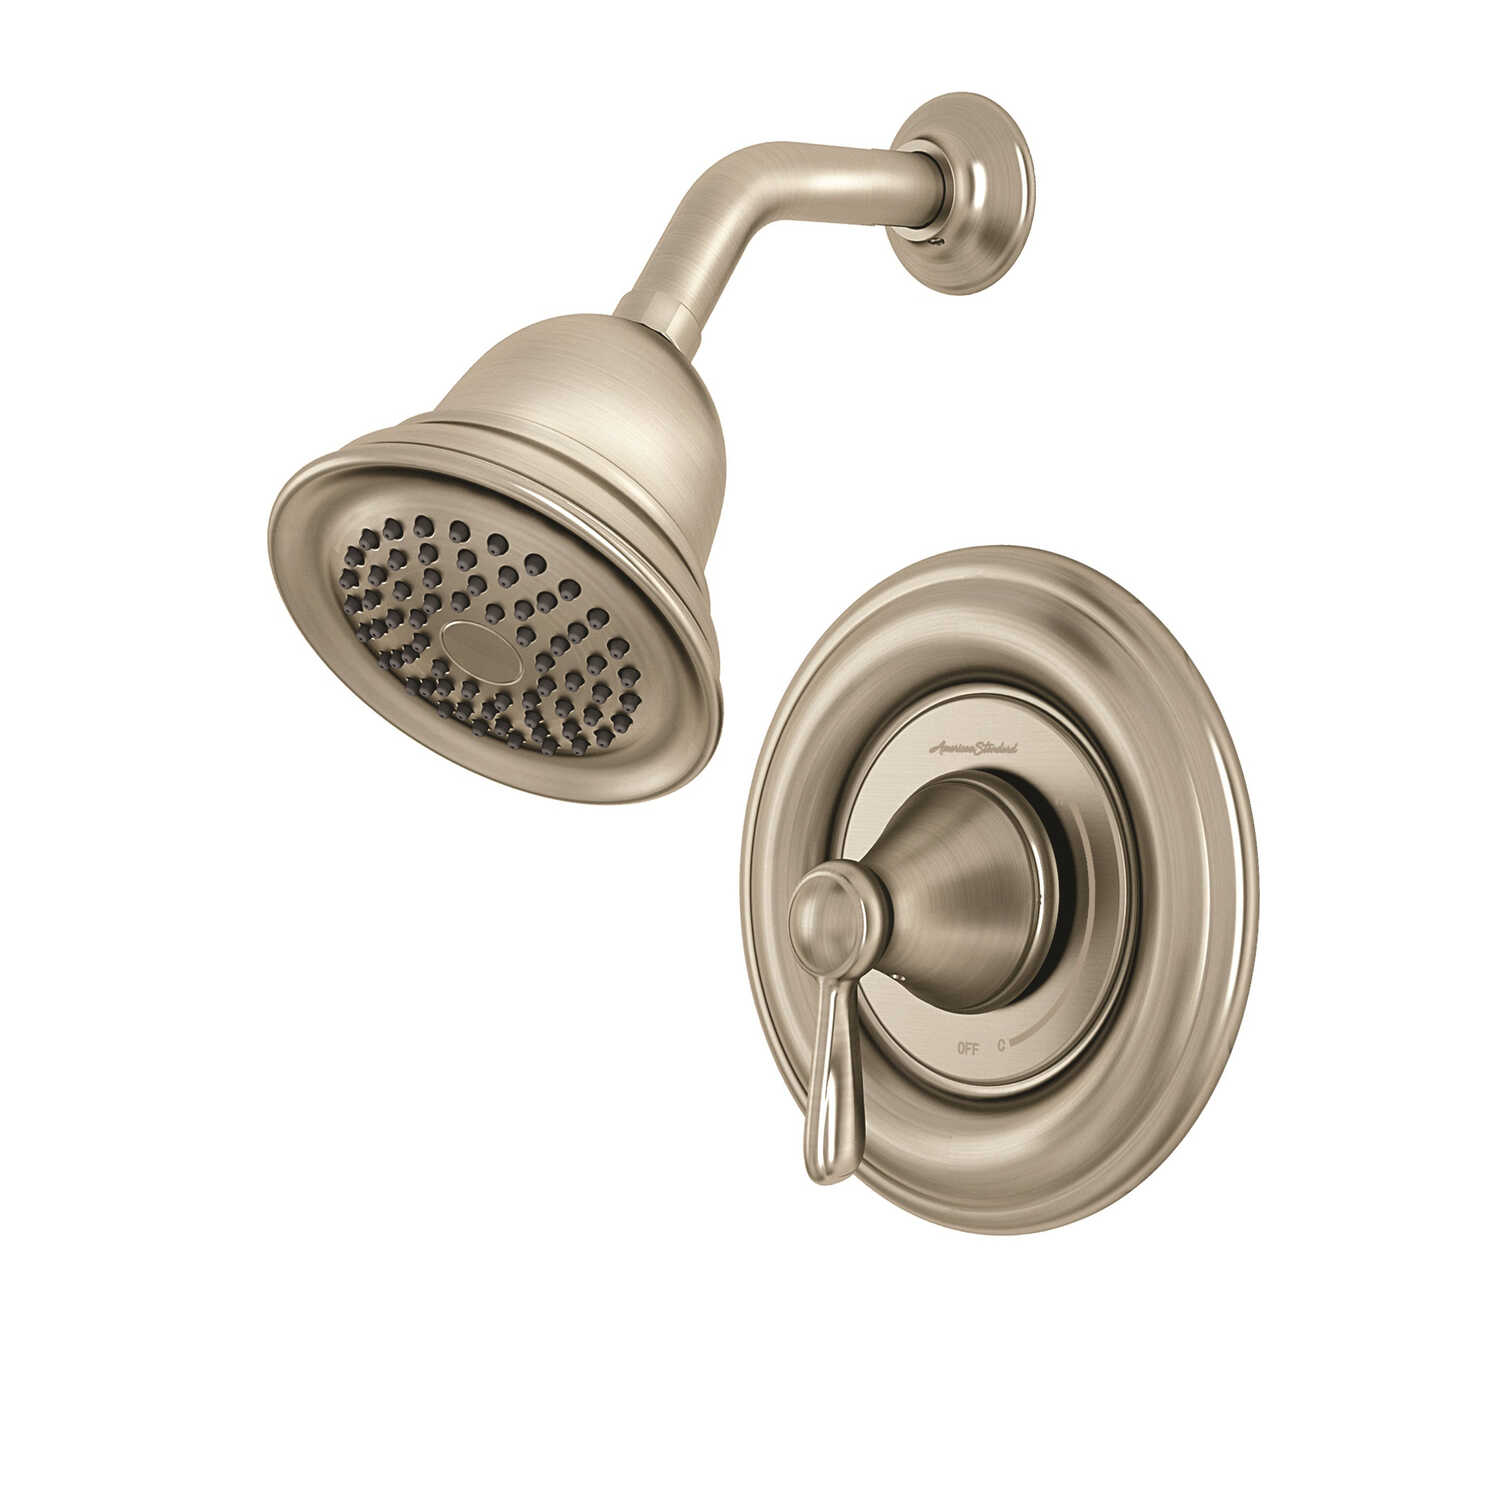 American Standard Marquette 1 Handle Shower Faucet Brushed Nickel ...